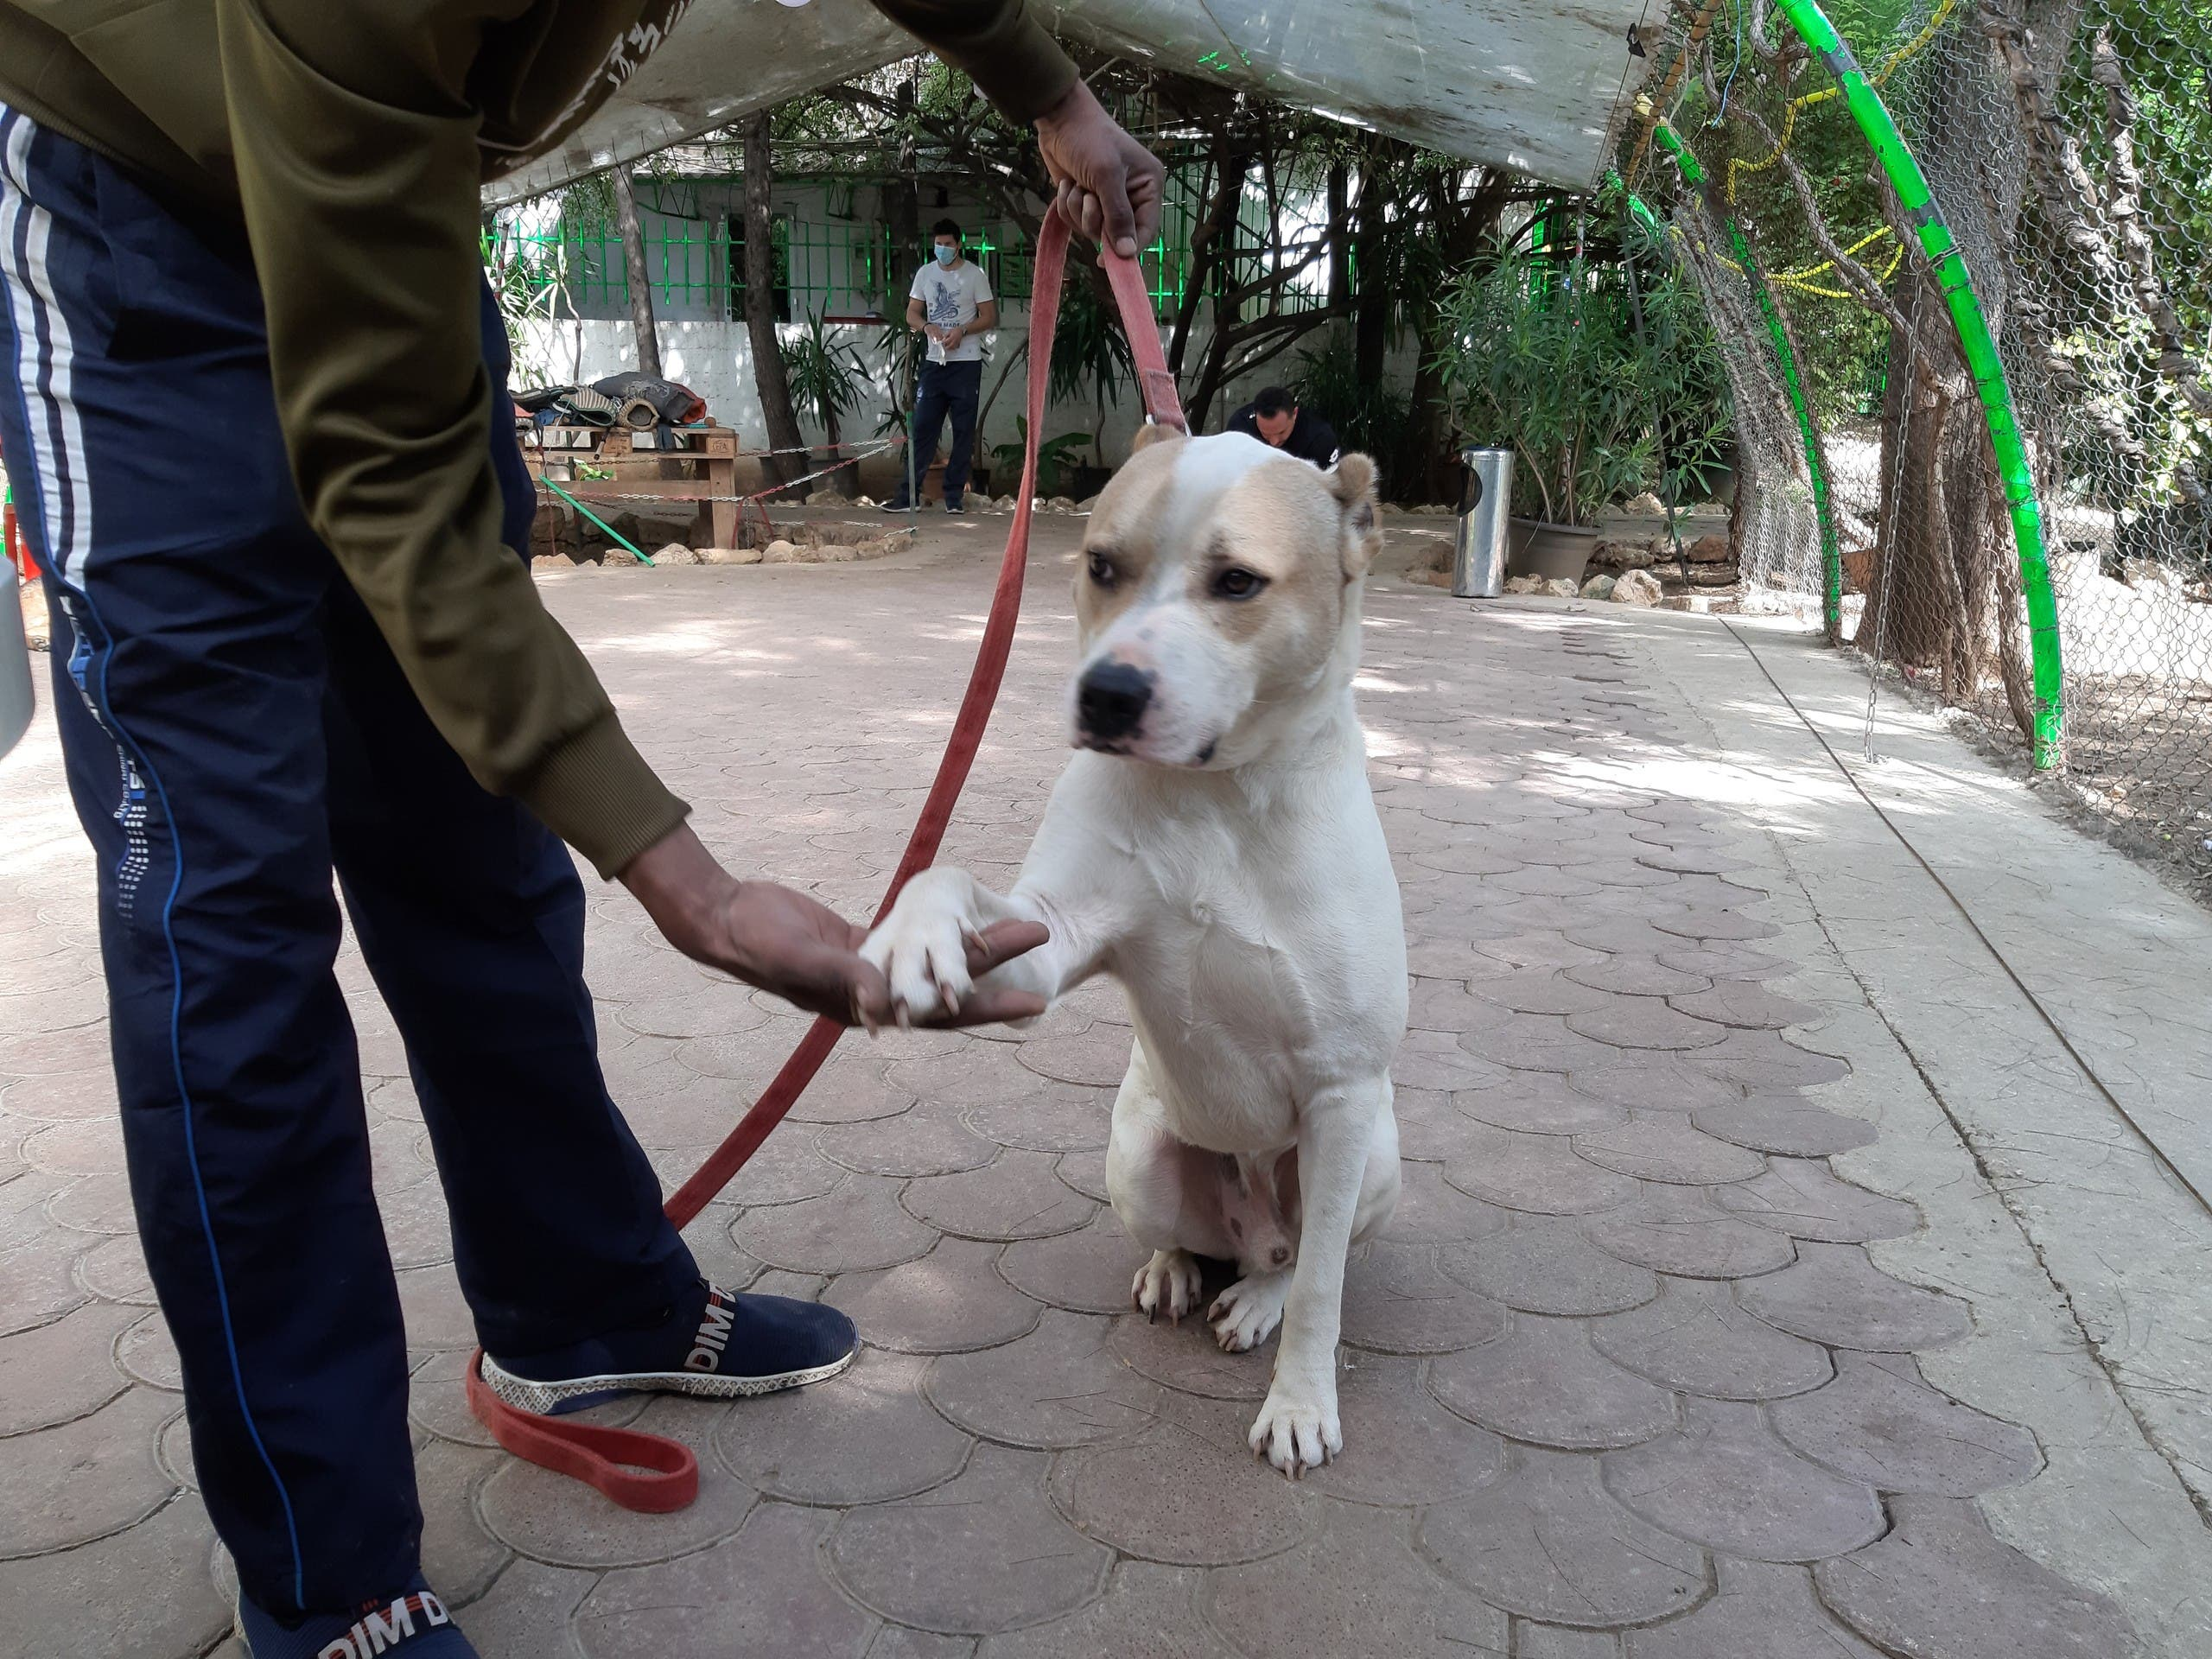 A dog who was rescued after being abandoned in Lebanon is shown at Sarwat Elasmar's kennel. (Abby Sewell)